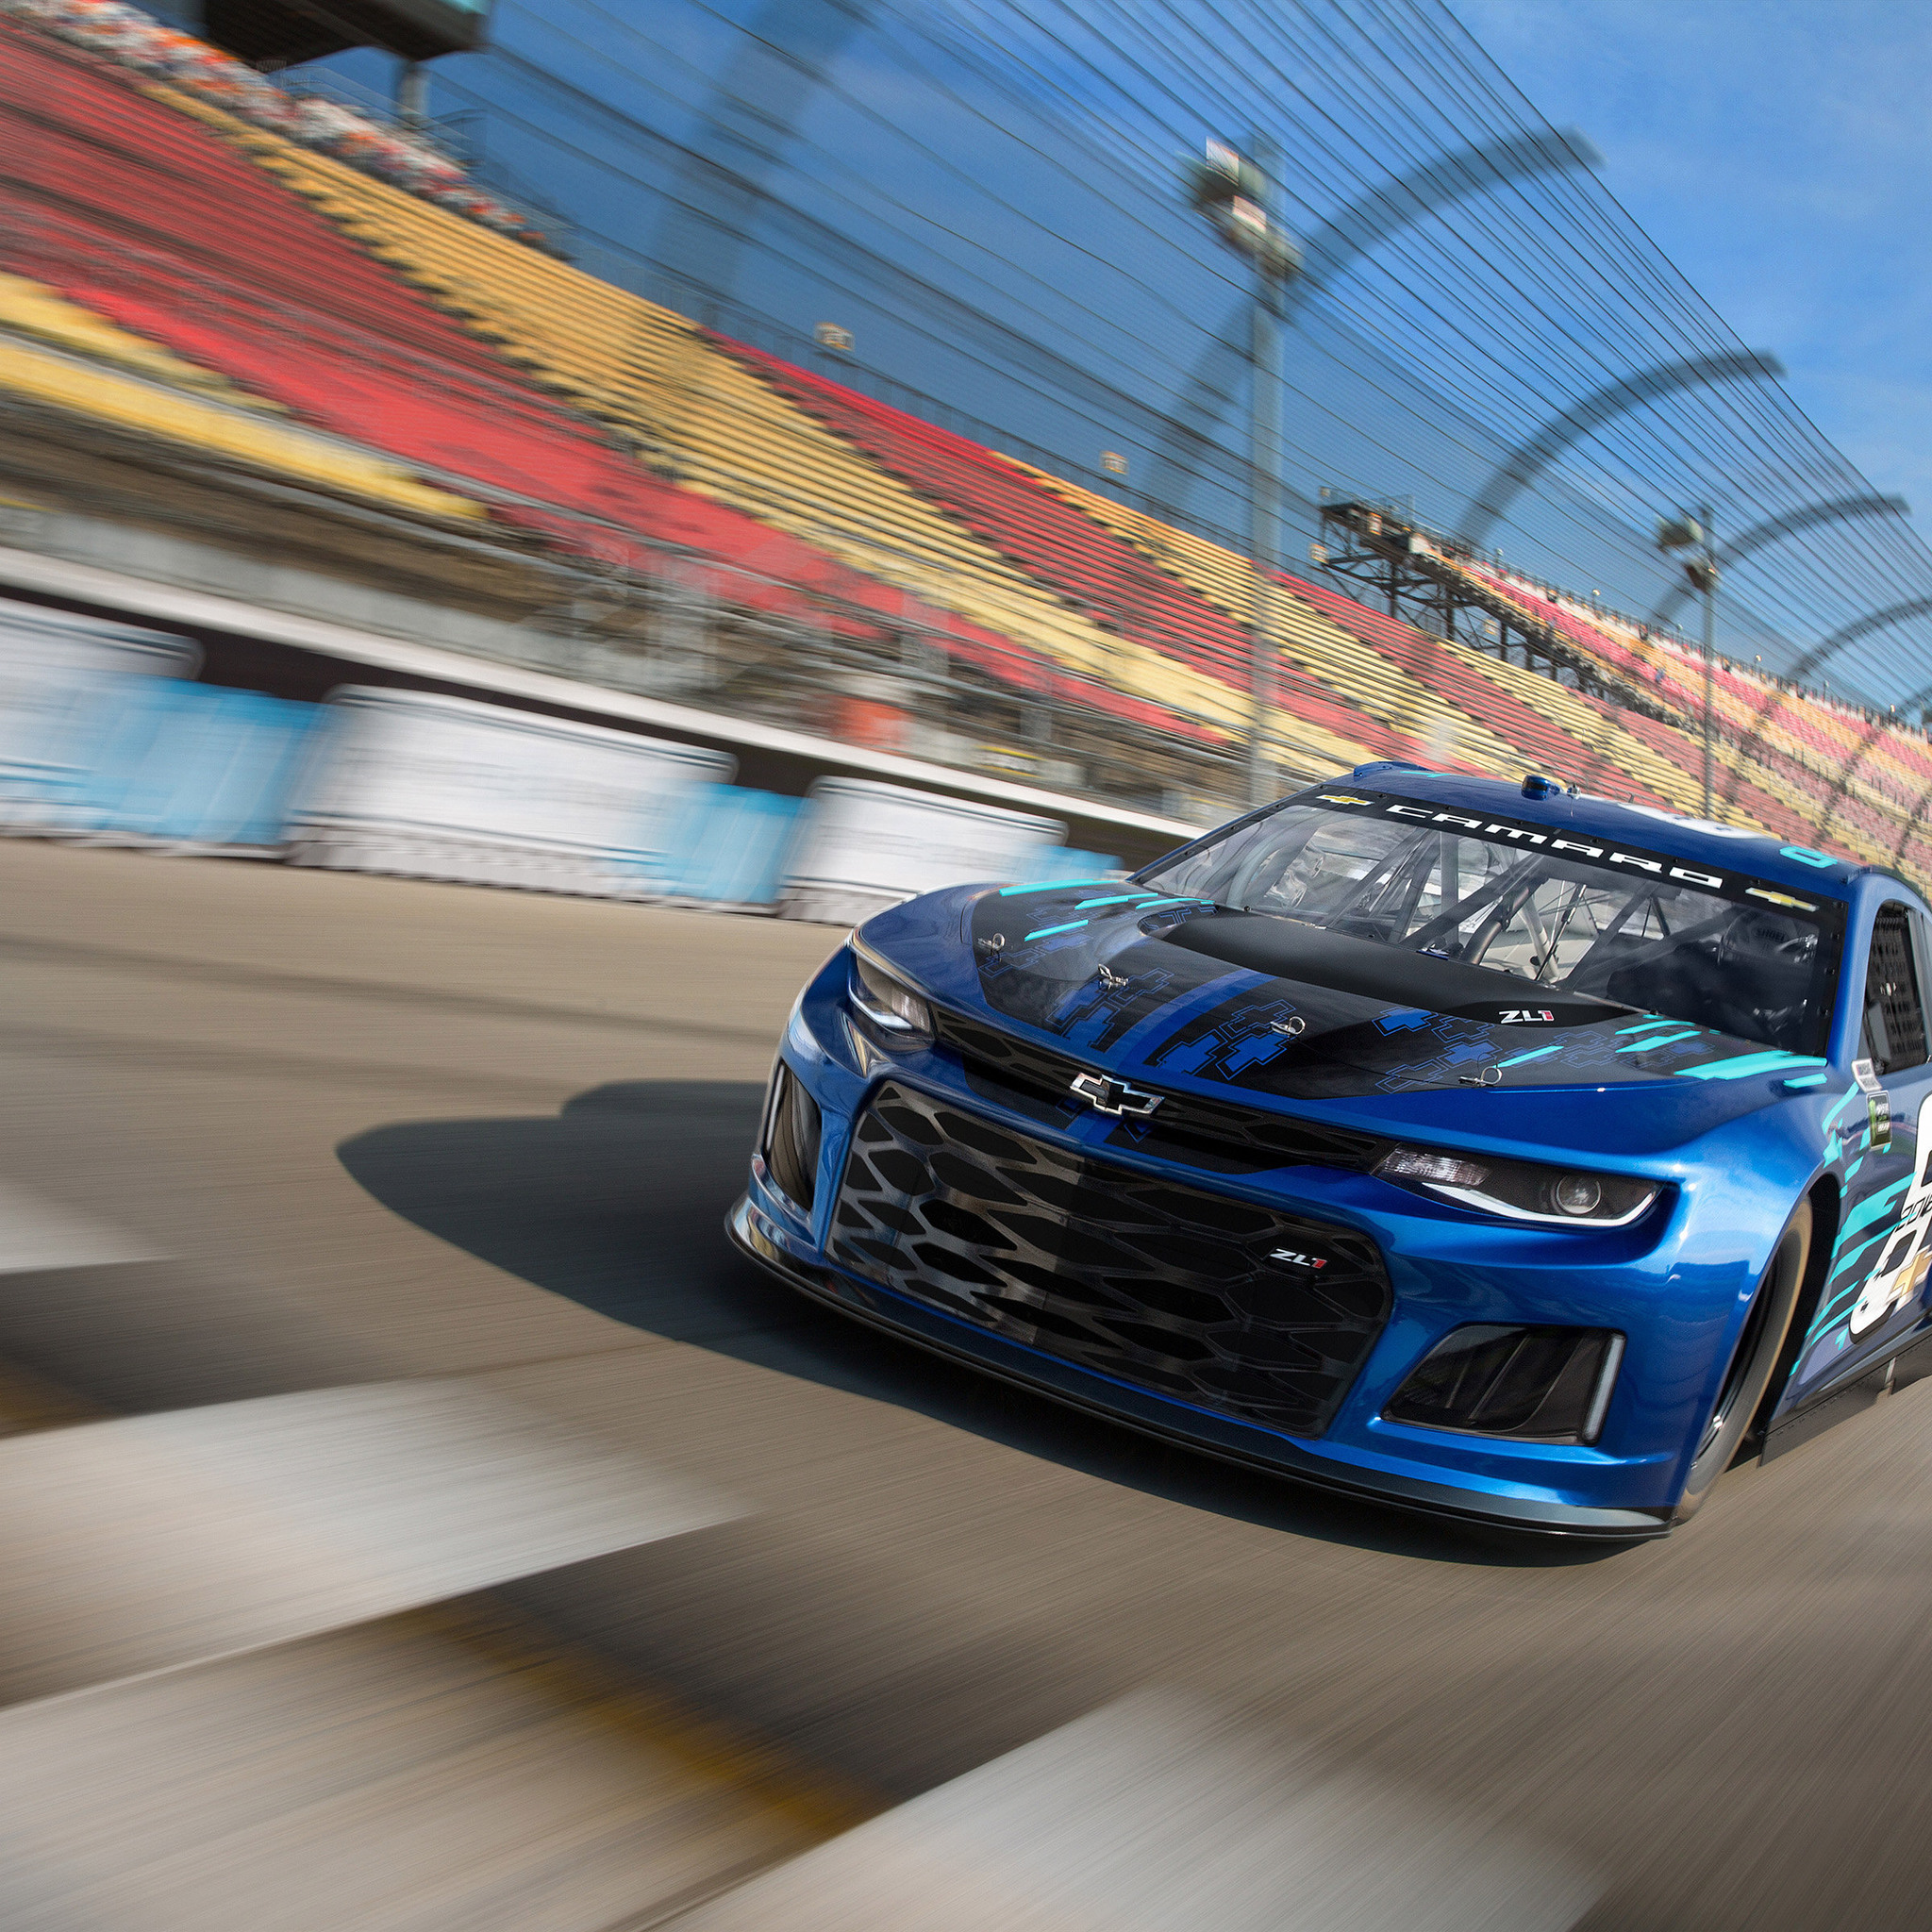 2048x2048 Chevrolet Camaro ZL1 NASCAR 2018 Ipad Air HD 4k